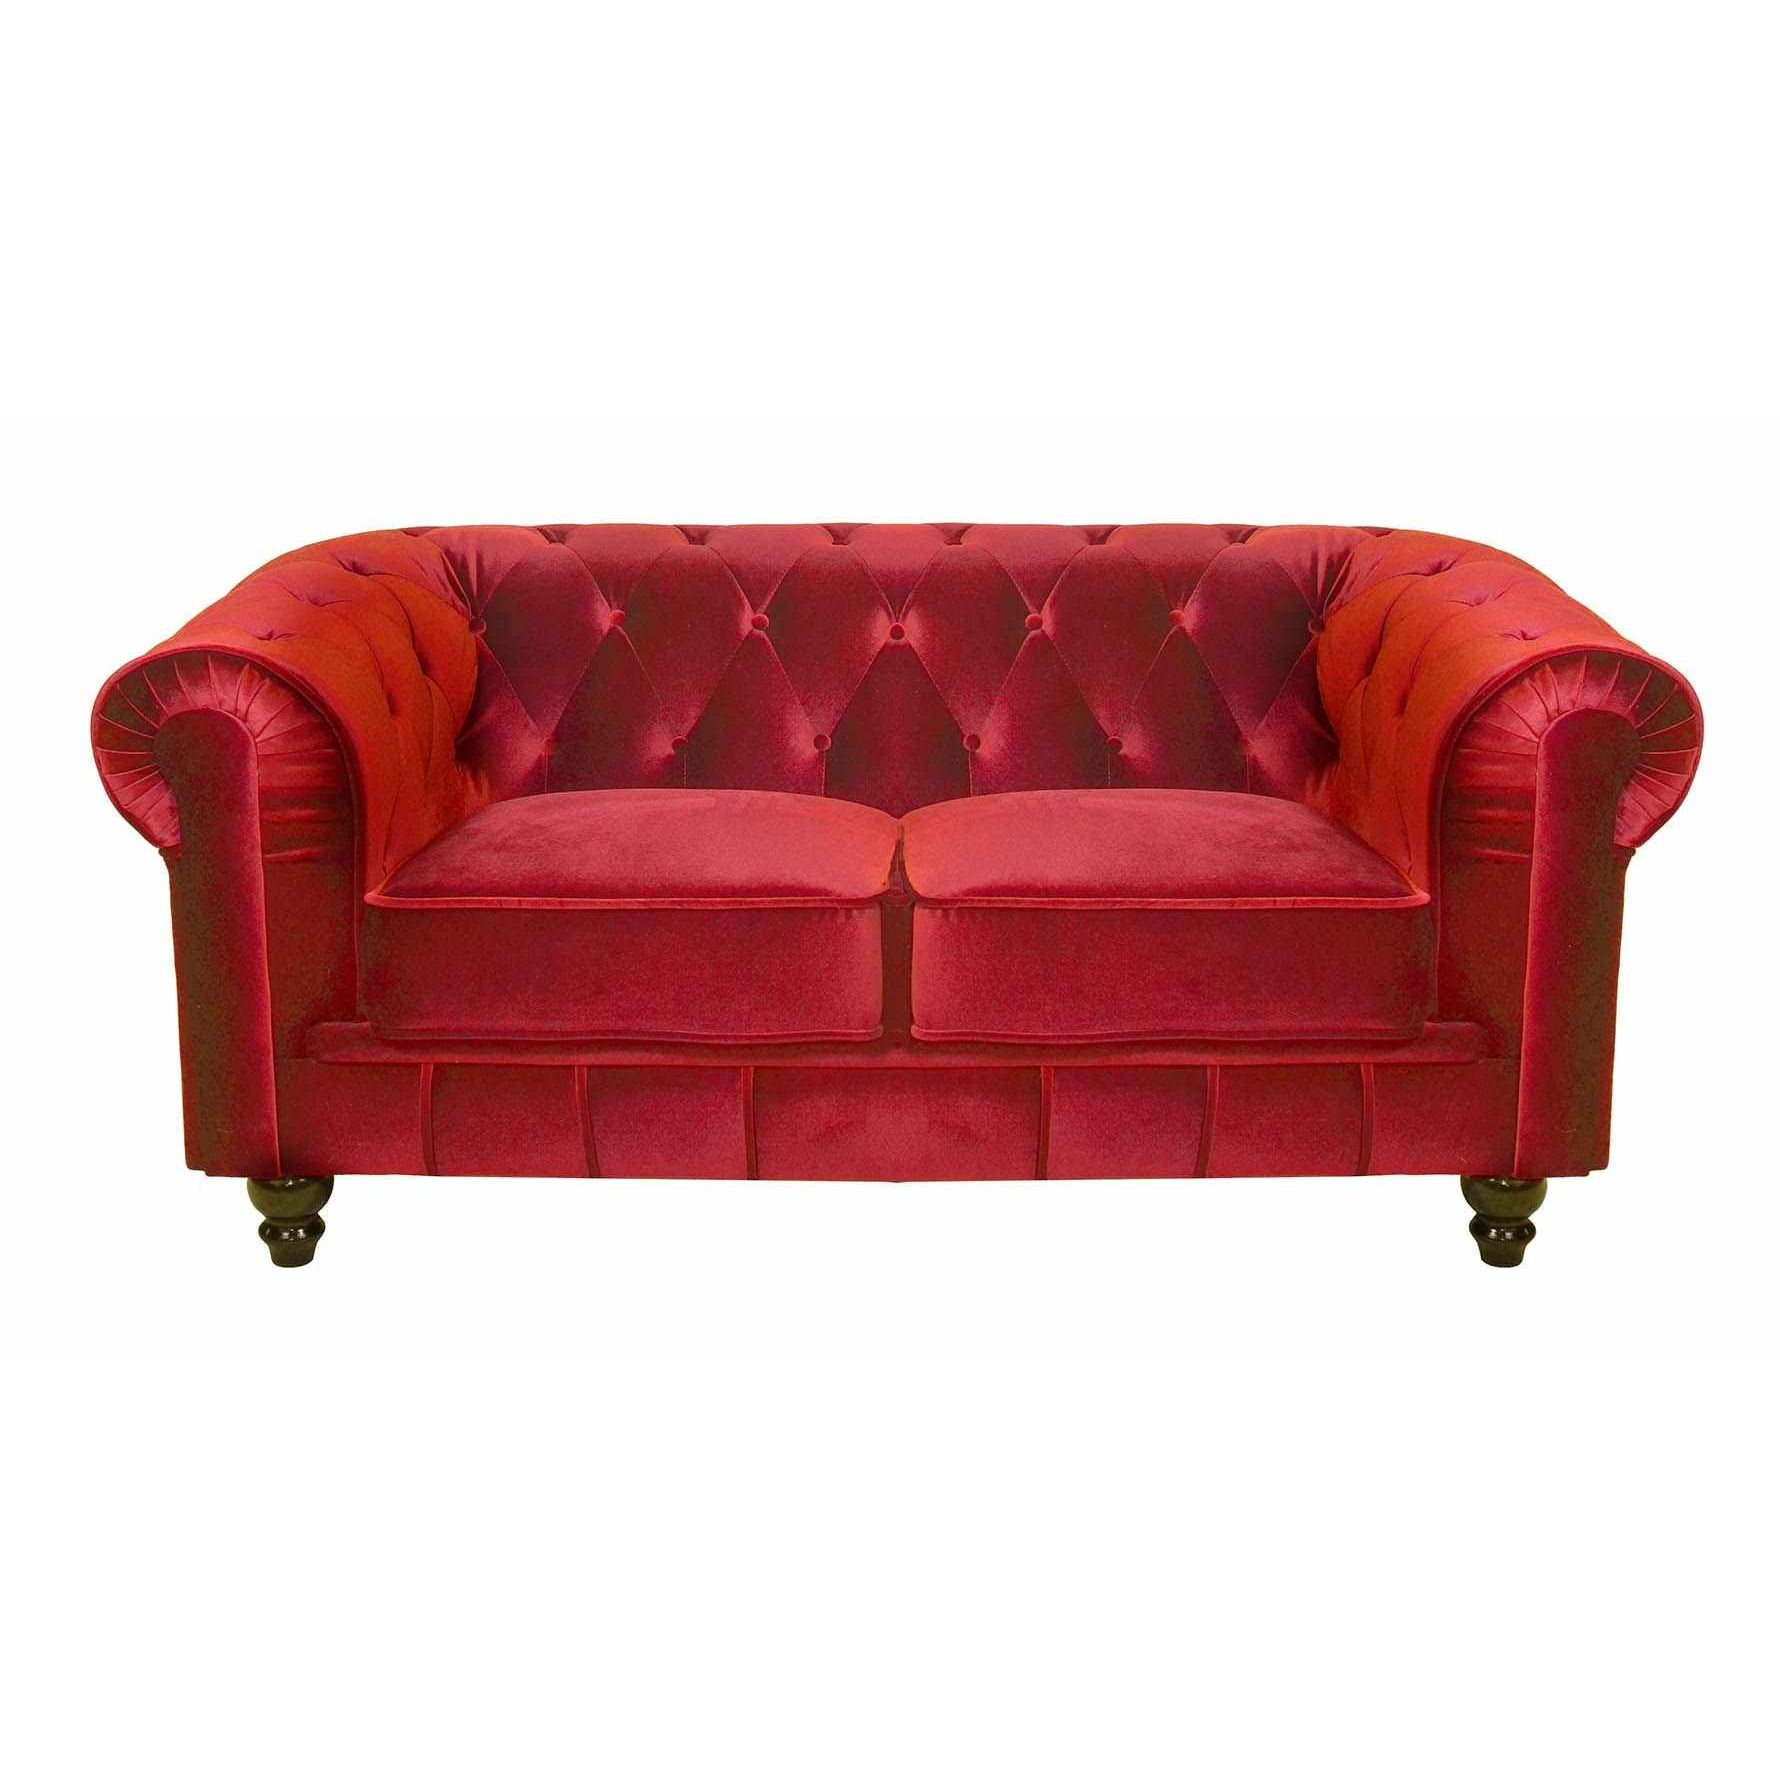 Deco in paris canape 2 places velours rouge chesterfield for Canape chesterfield en velours